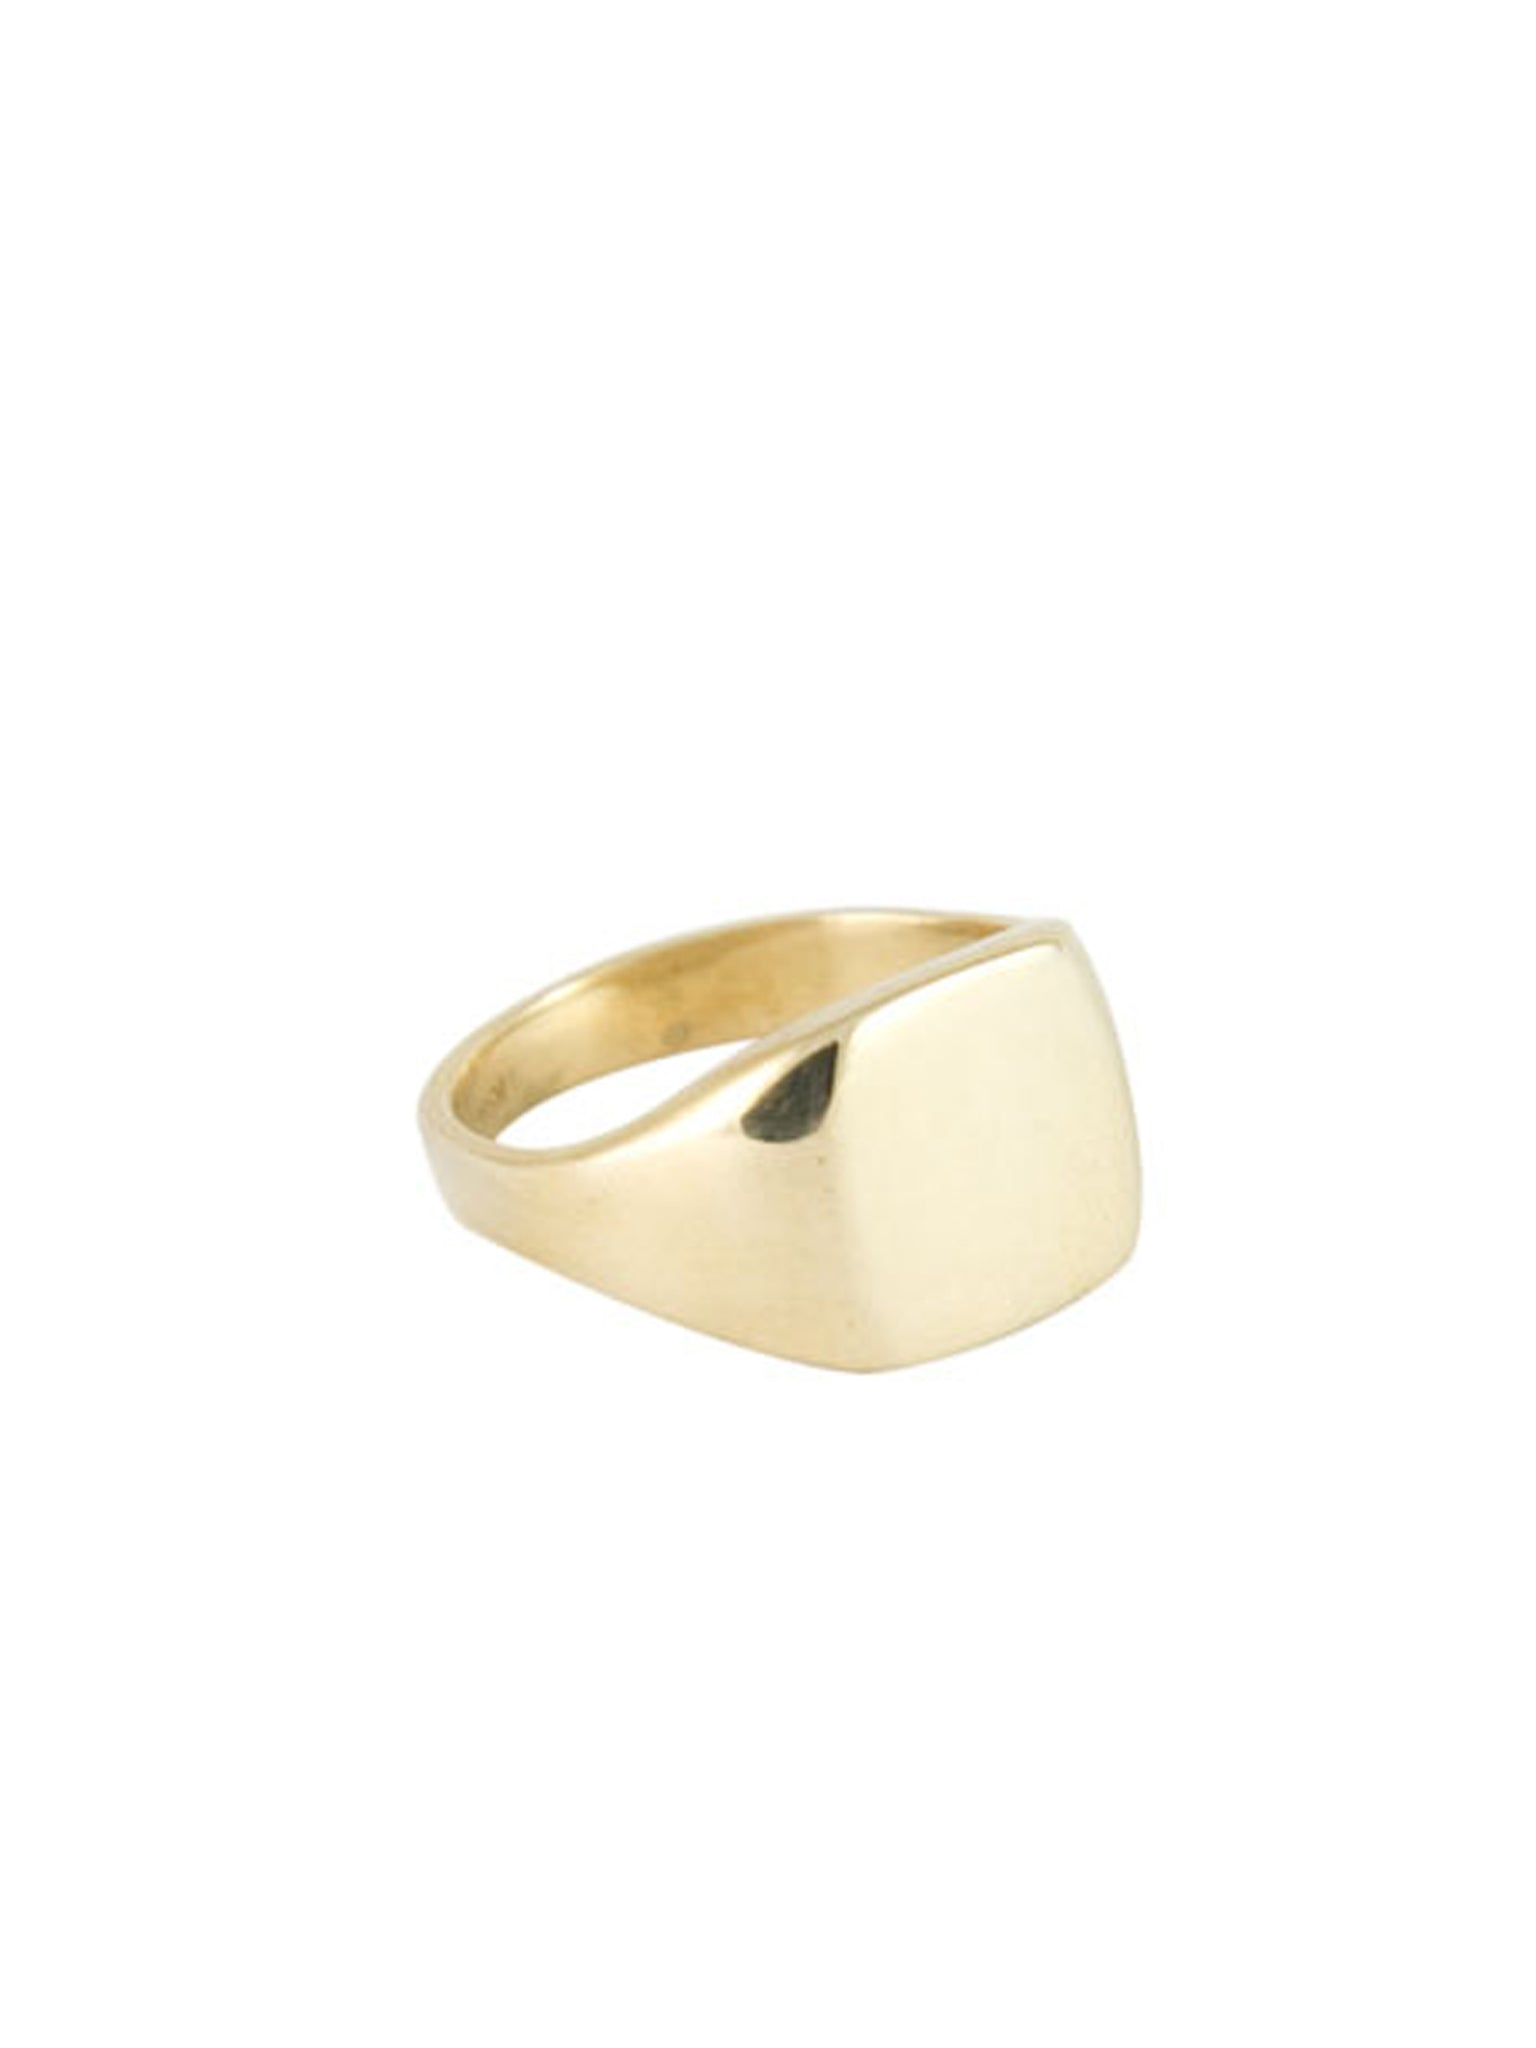 Initial Ring / Brass